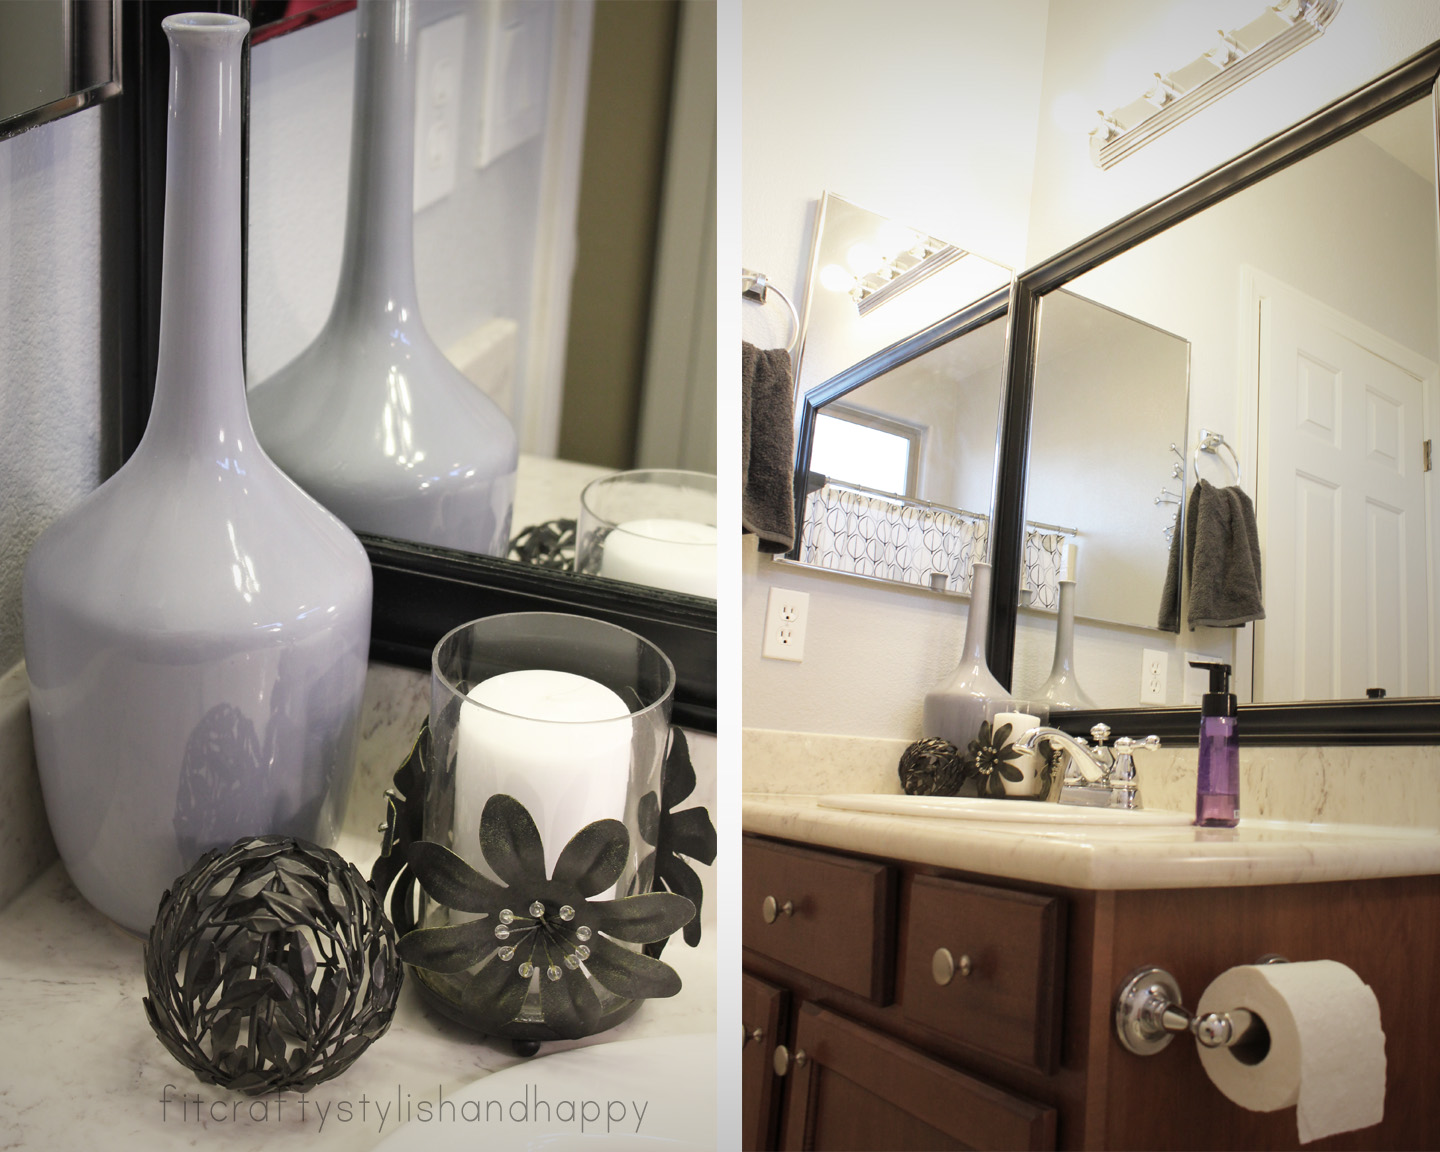 Fit crafty stylish and happy guest bathroom makeover - Bathroom decorative ideas ...